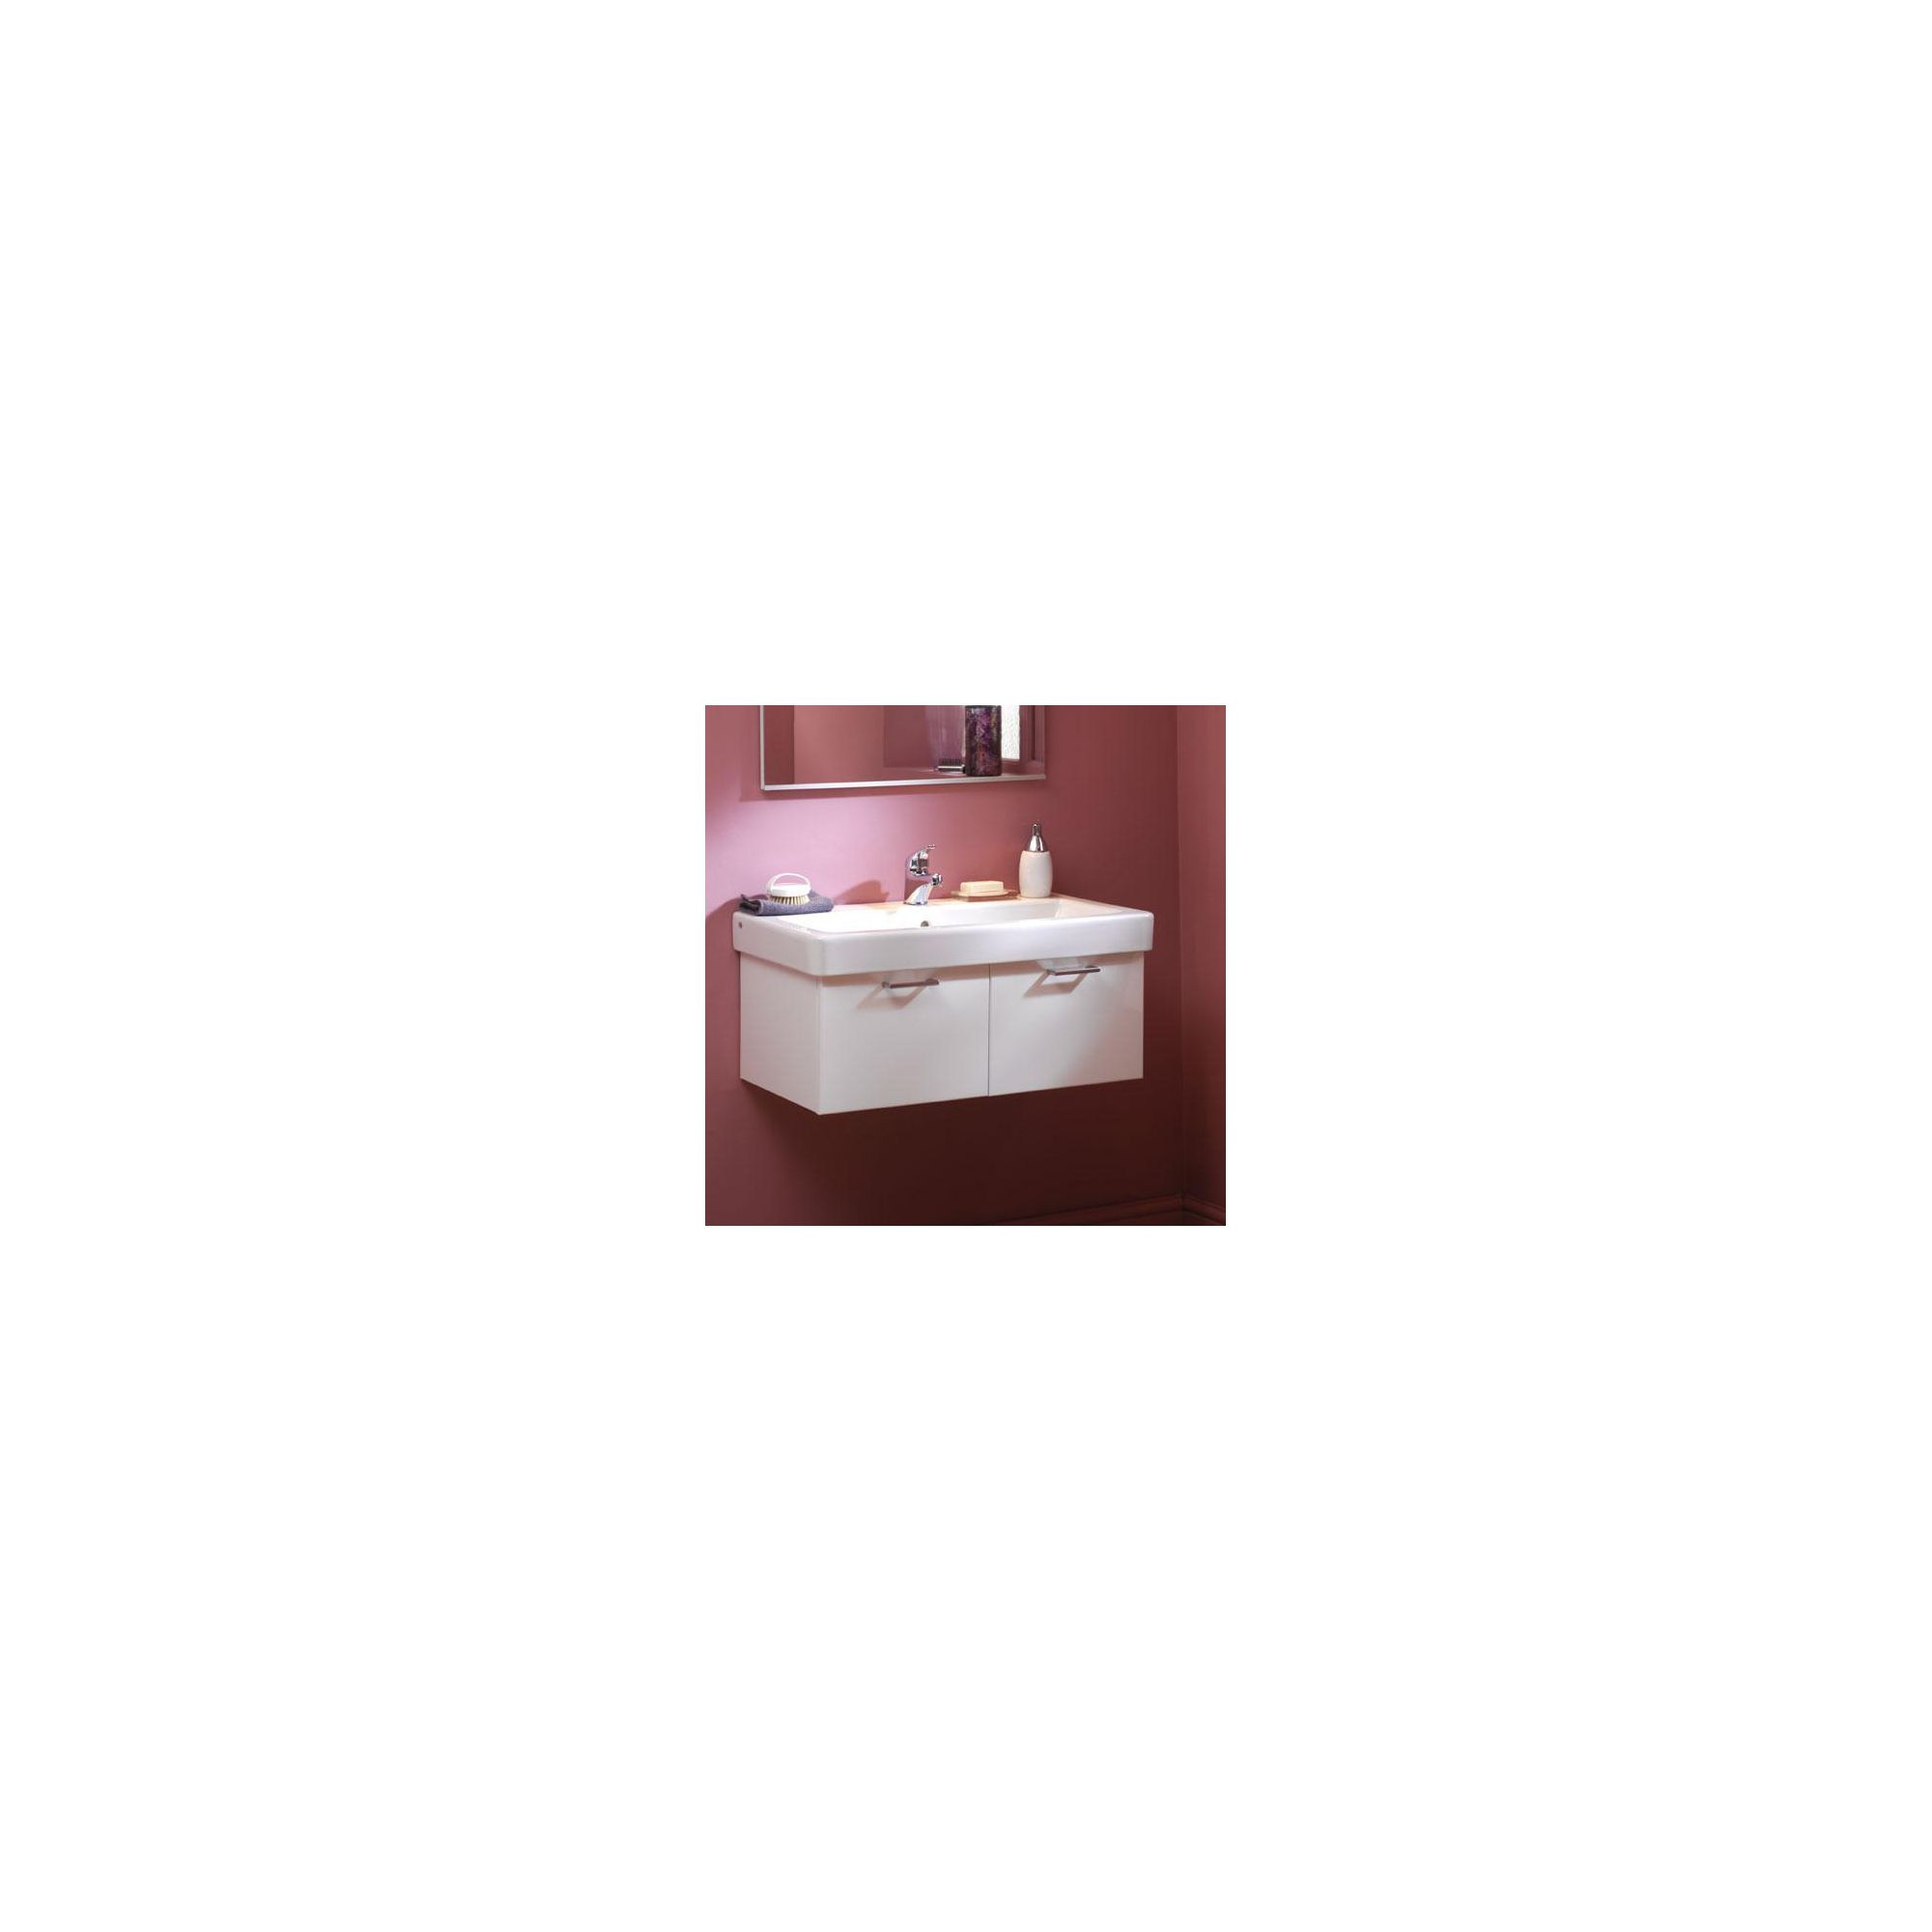 Duchy Trerise White Wall Hung 2 Drawer Vanity Unit and Basin - 800mm Wide x 445mm Deep